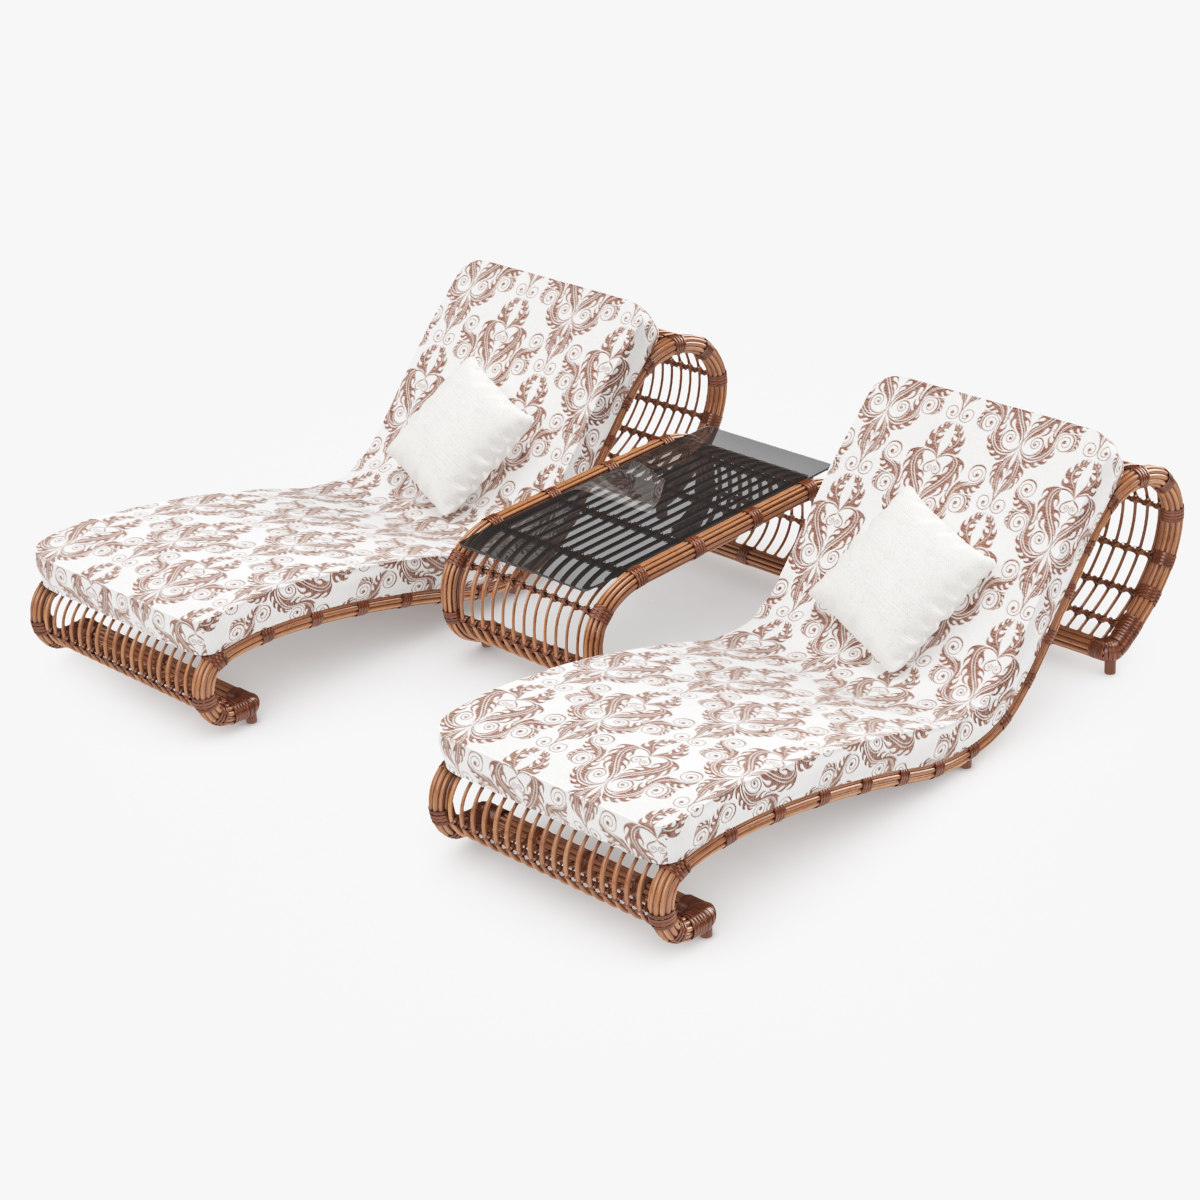 3ds max rattan lounger for Cane chaise longue